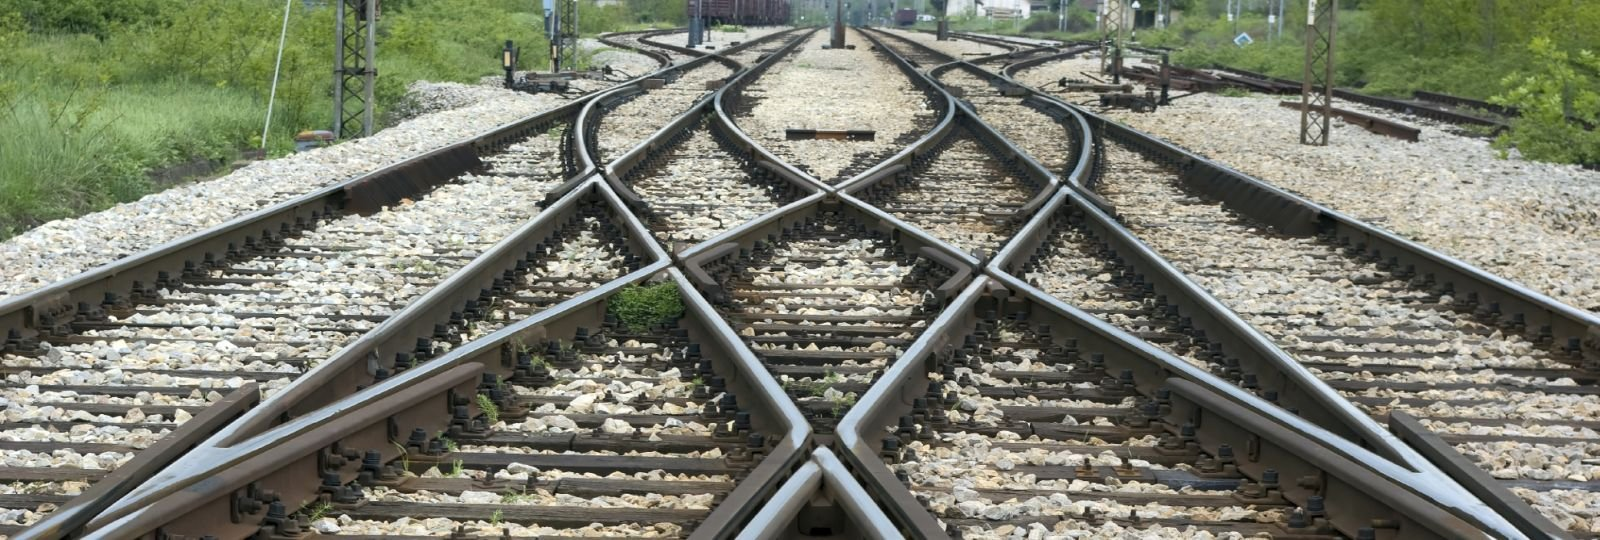 Railroad tracks overlapping one another